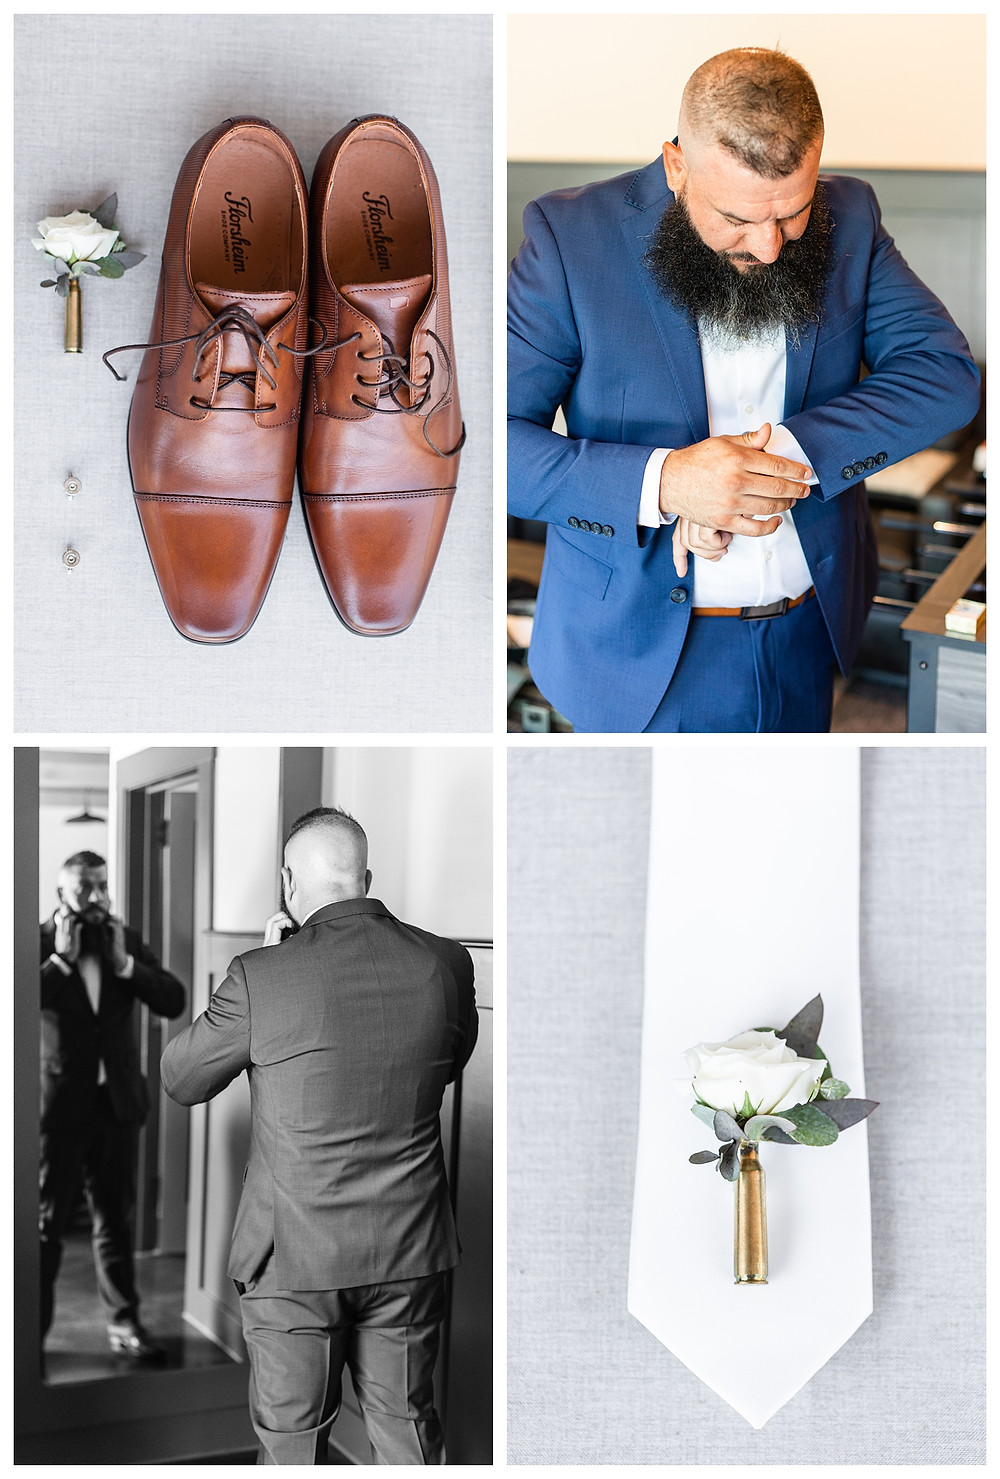 Josh and Andrea wedding photography husband and wife photographer team michigan south haven pictures Black River Barn luxury elegant wedding venue spring groom shoes getting ready boutonnière tie